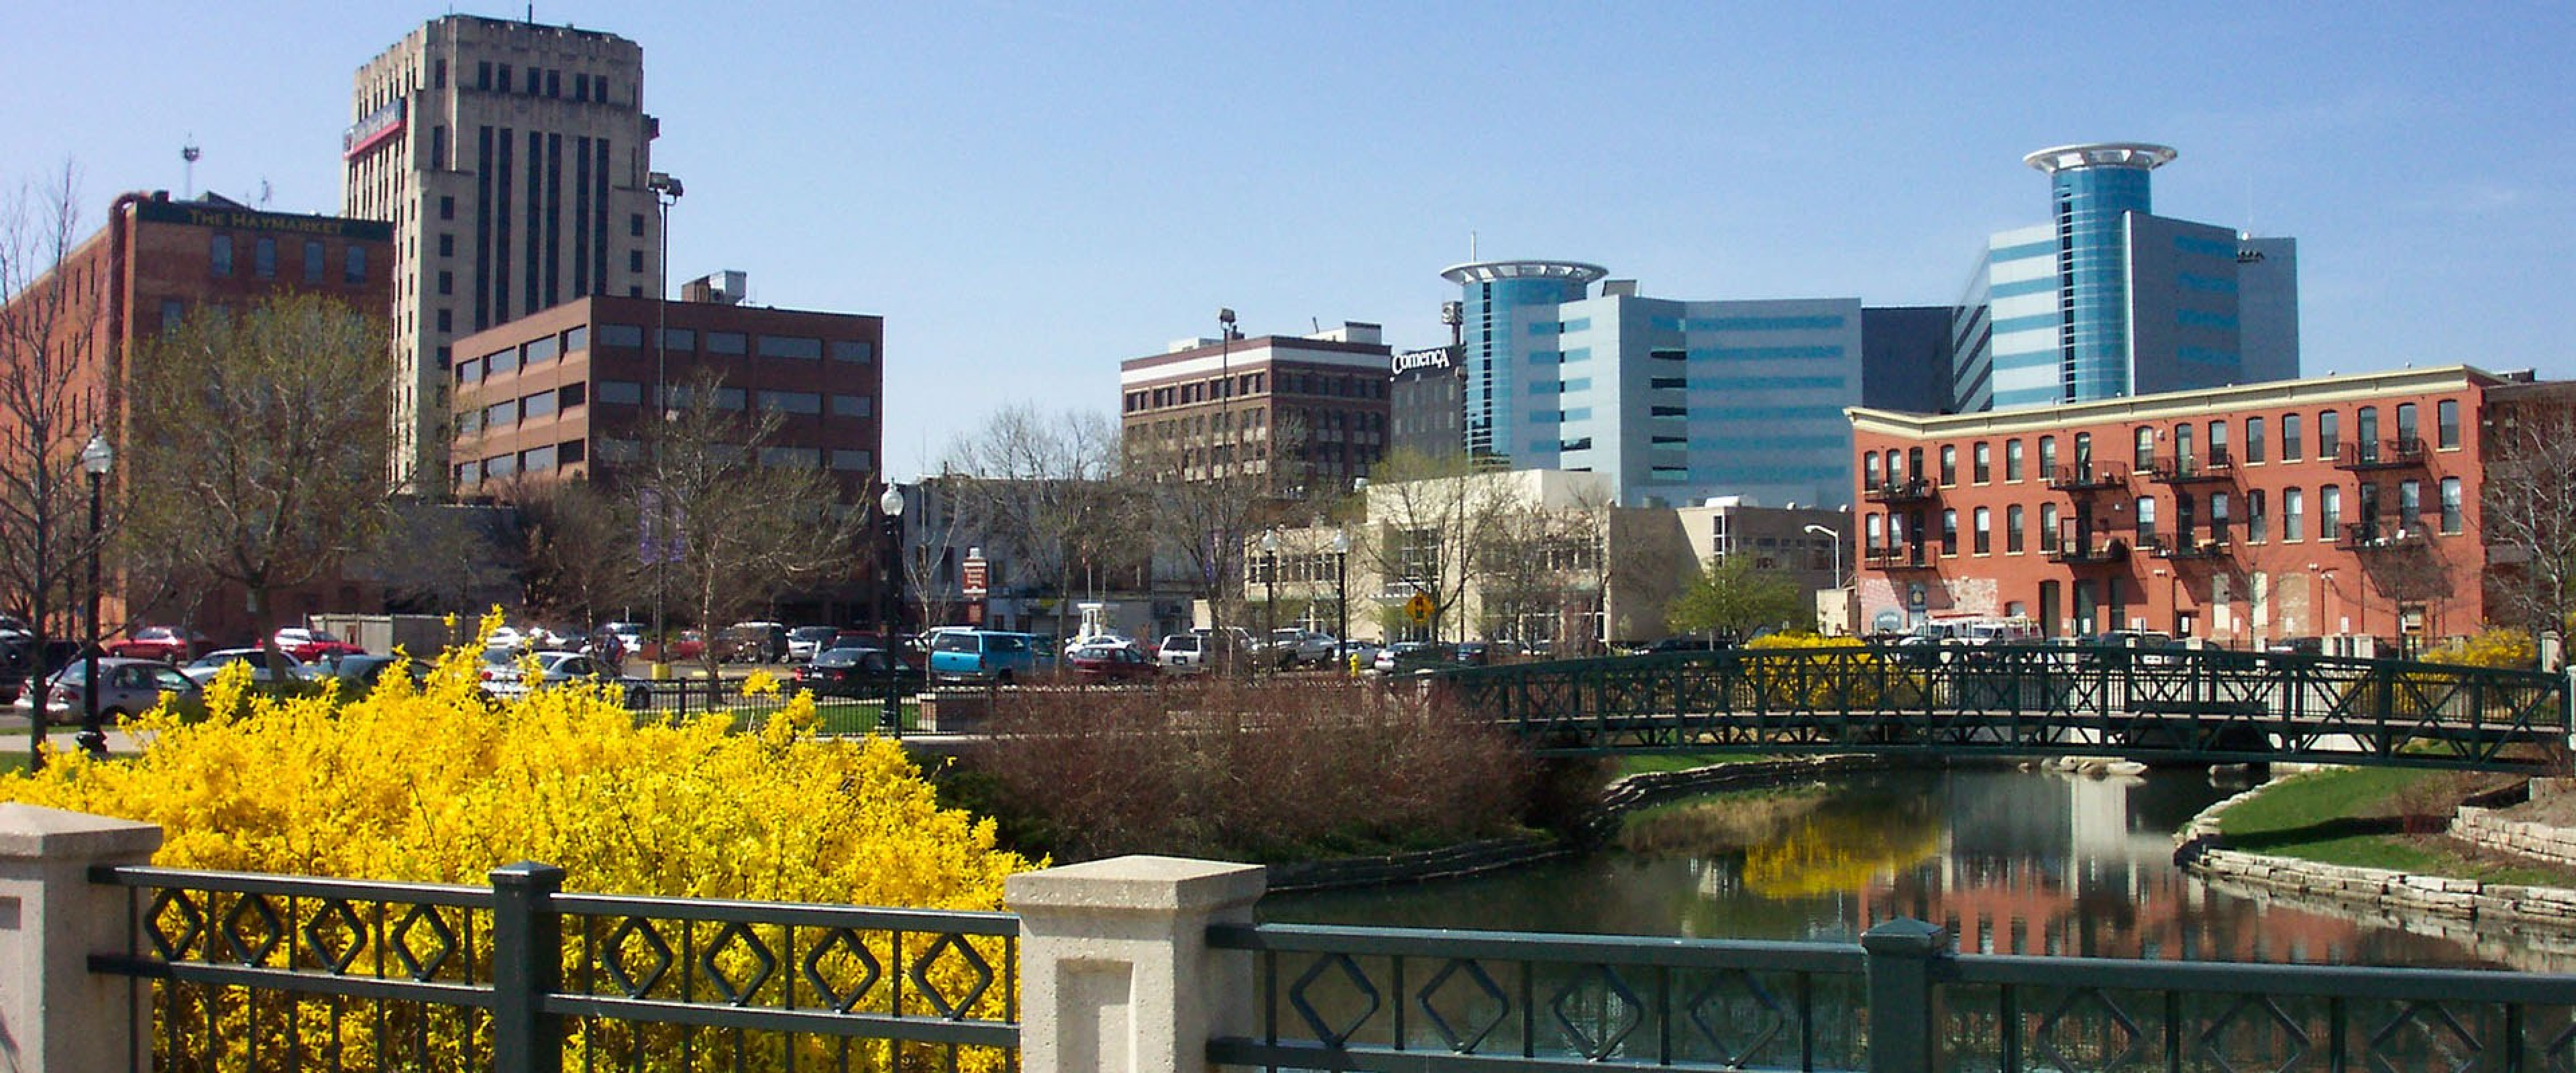 downtown kalamazoo